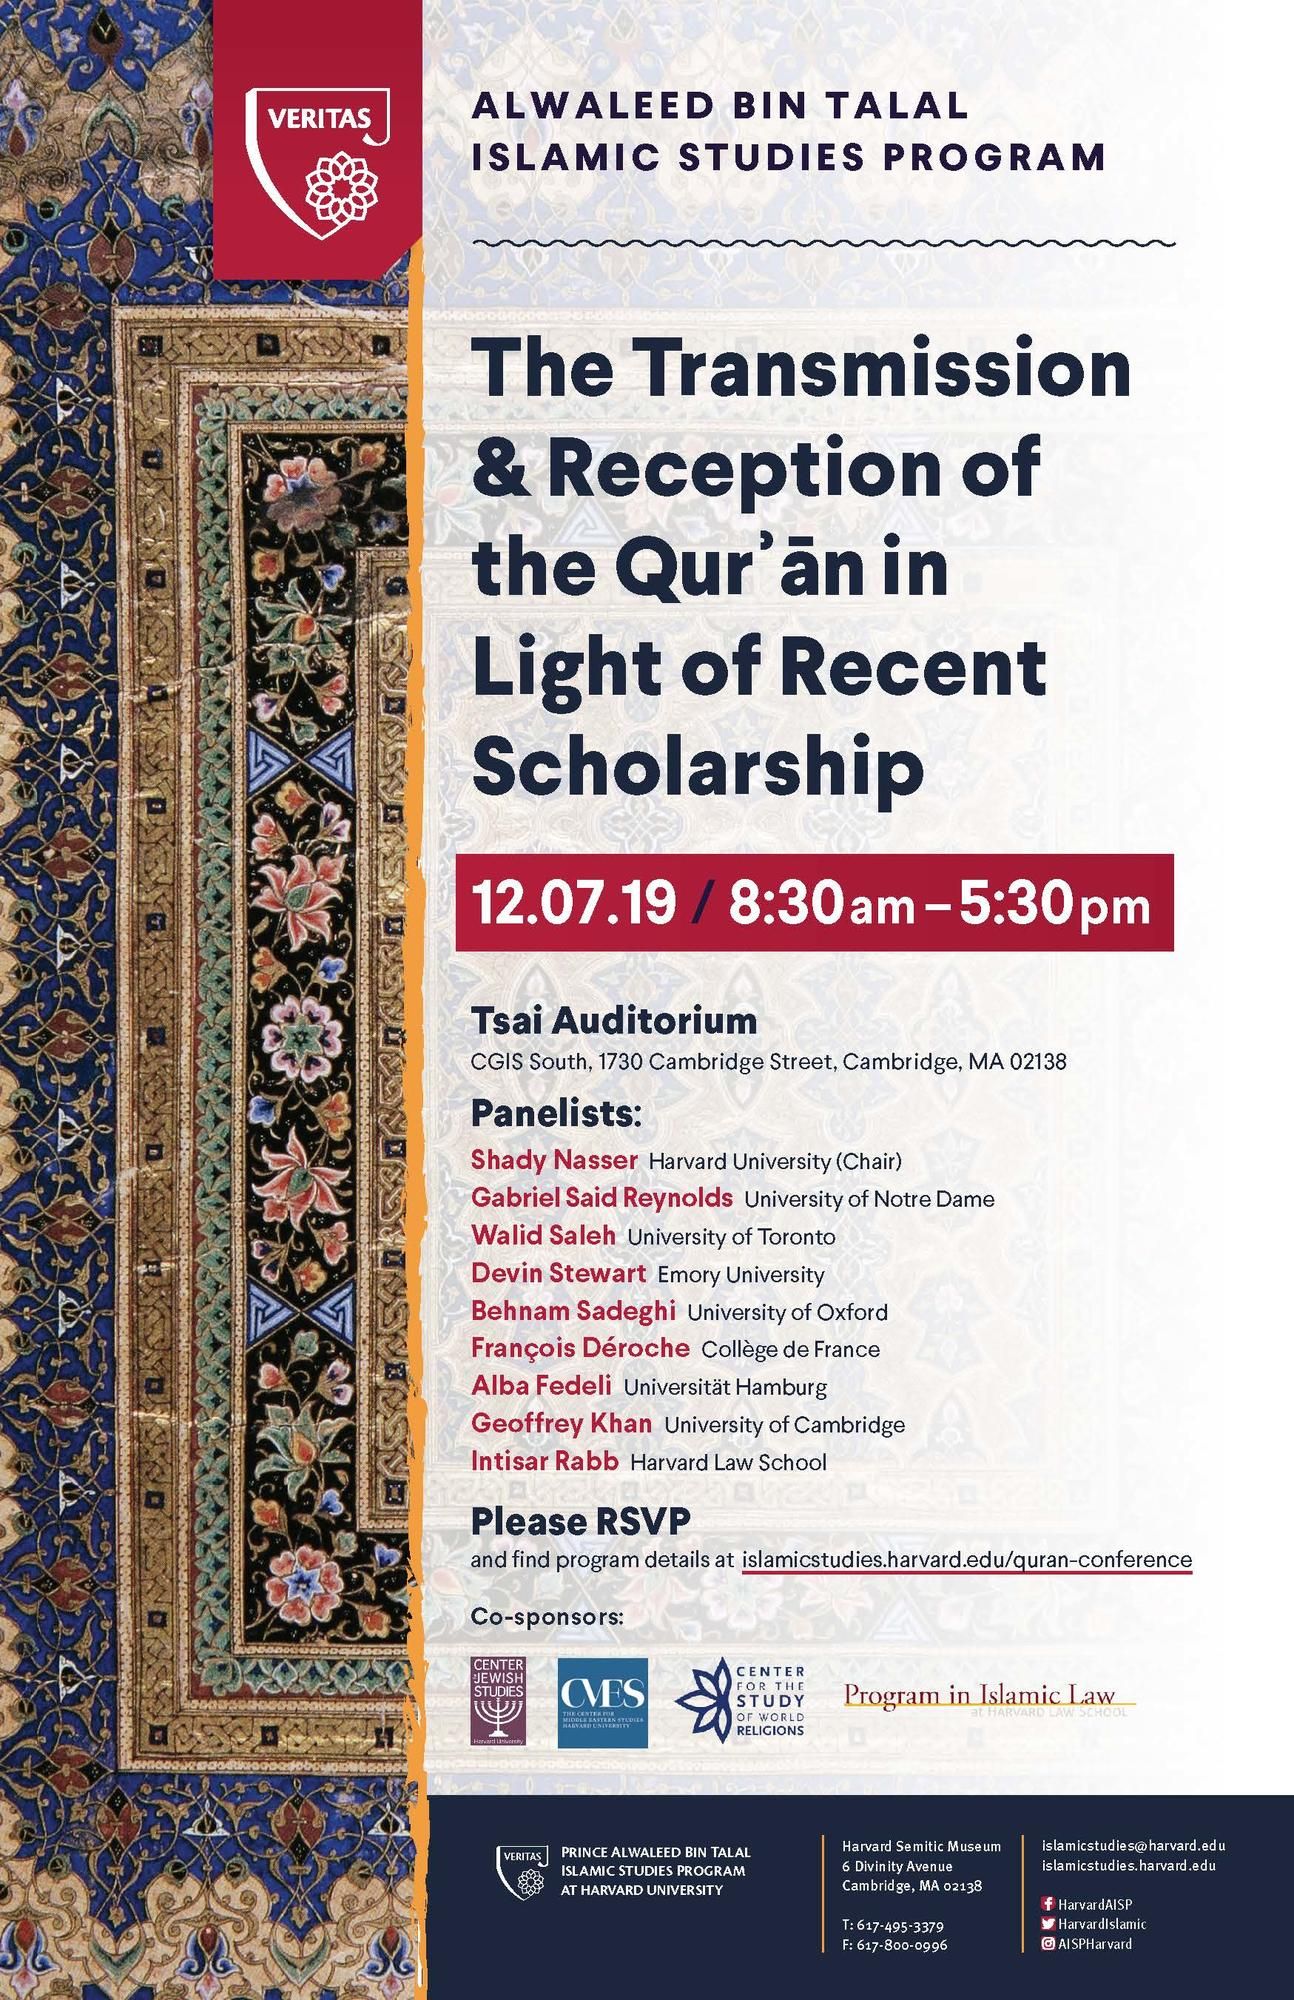 The Transmission and Reception of the Qur'an in Light of Recent Scholarship